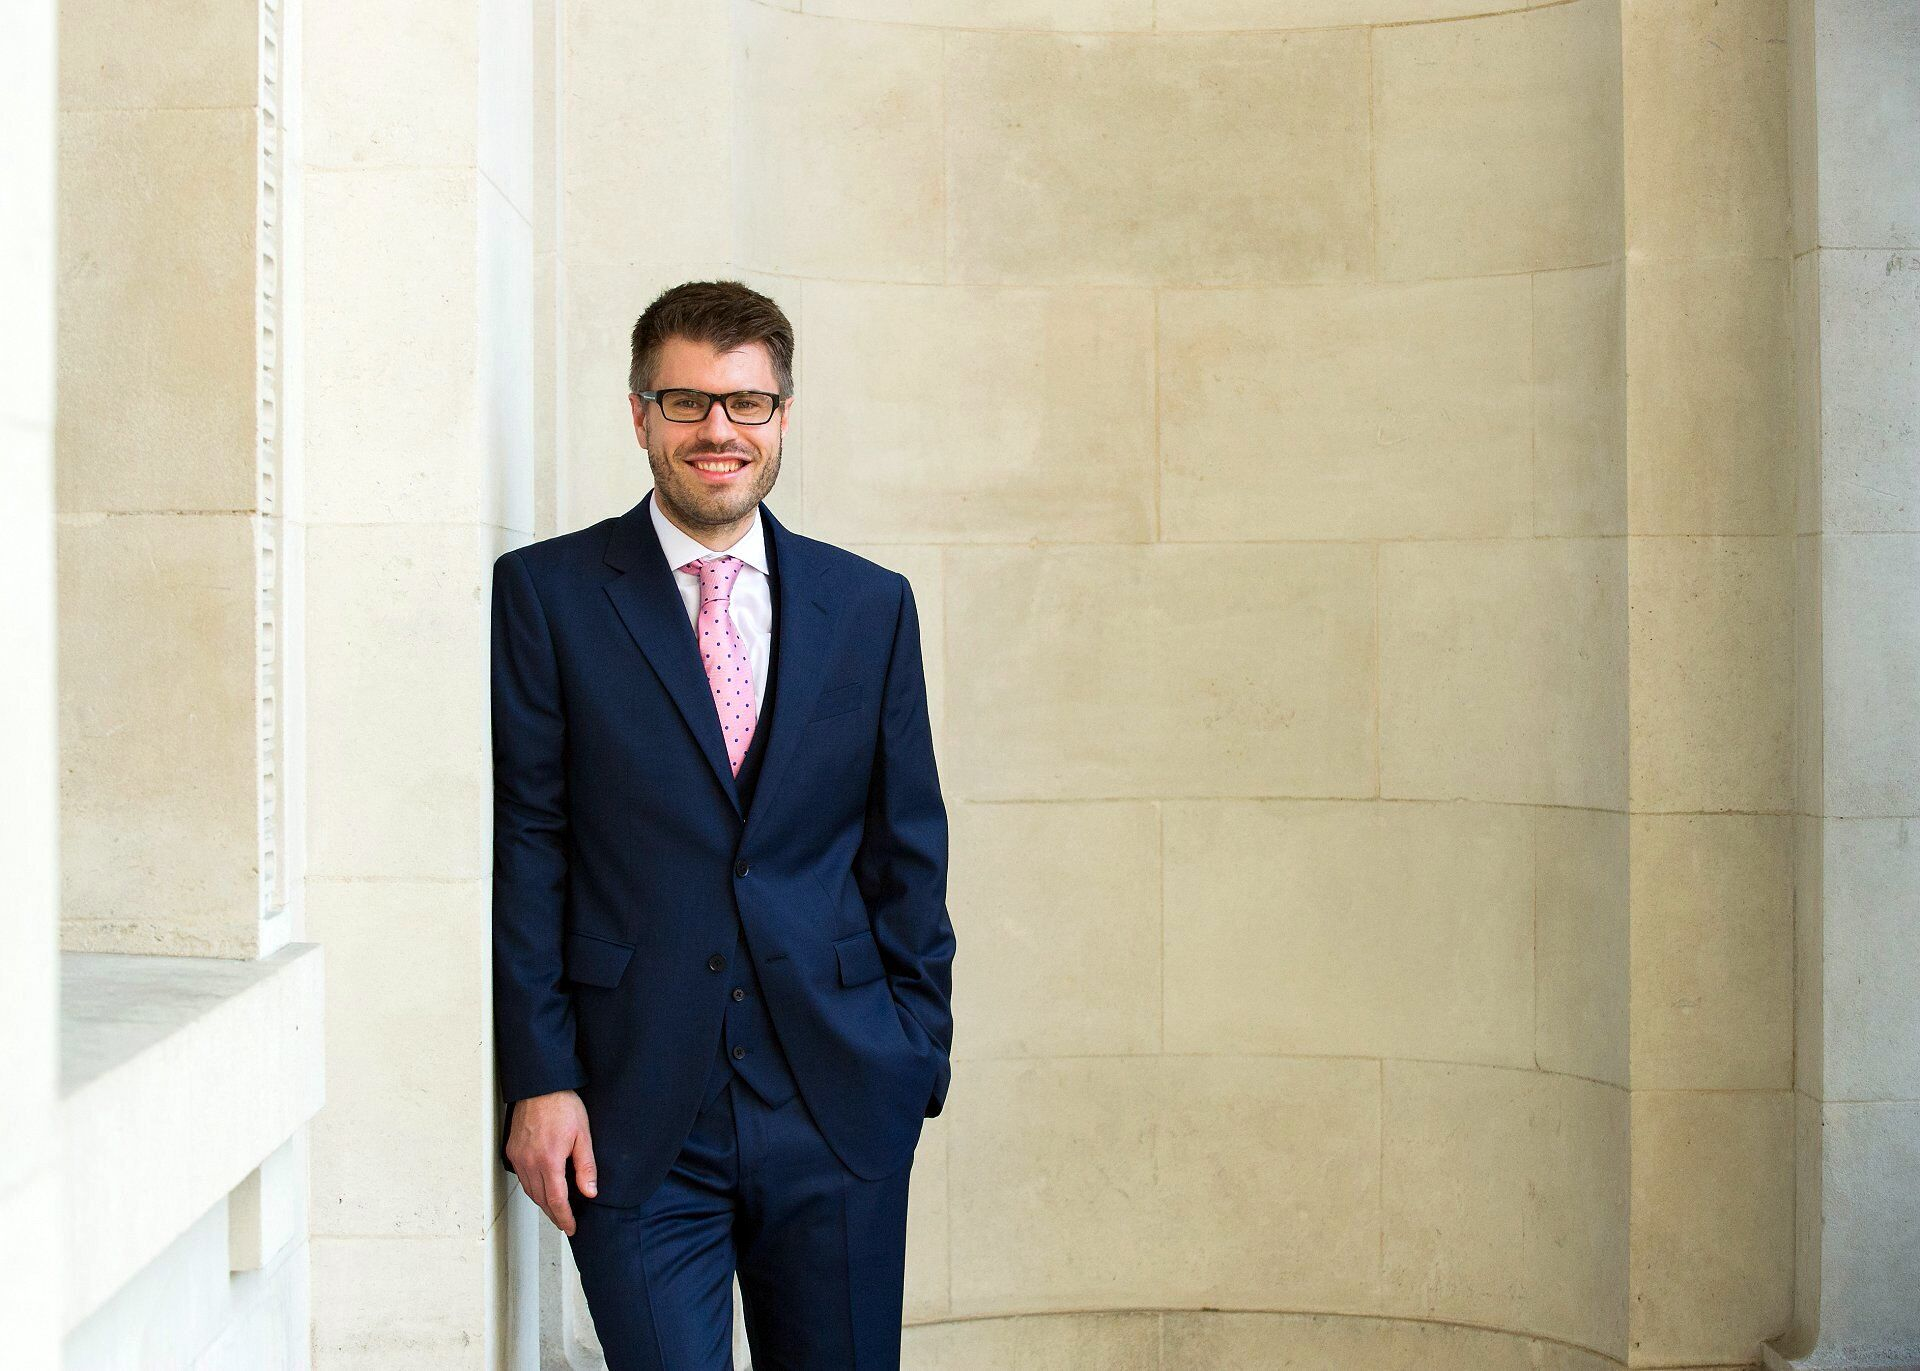 groom in navy suit pink spotty tie by old marylebone town hall wedding photographer emma duggan